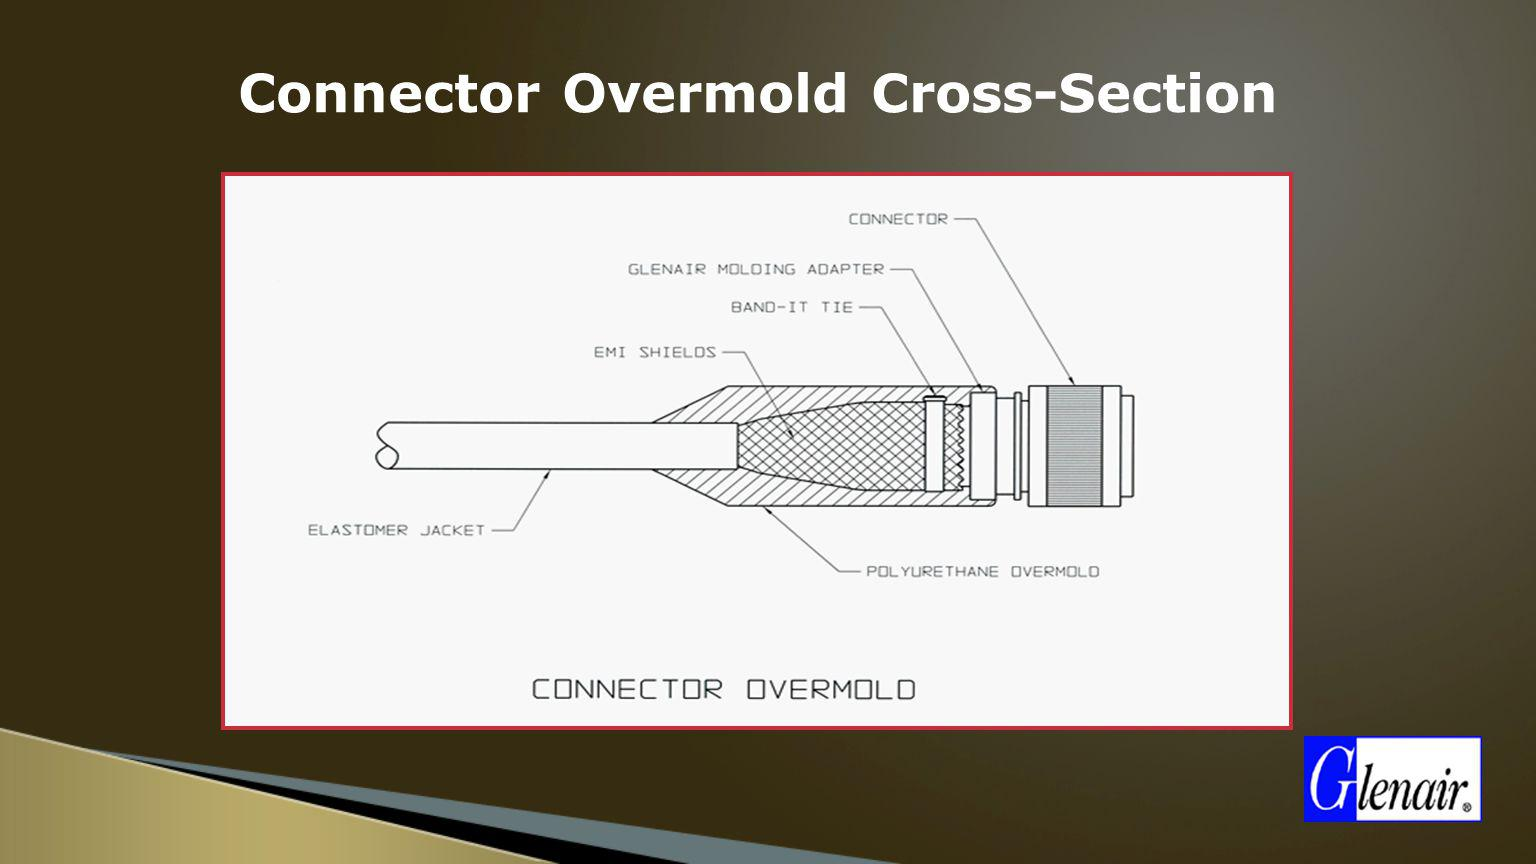 Connector Overmold Cross-Section